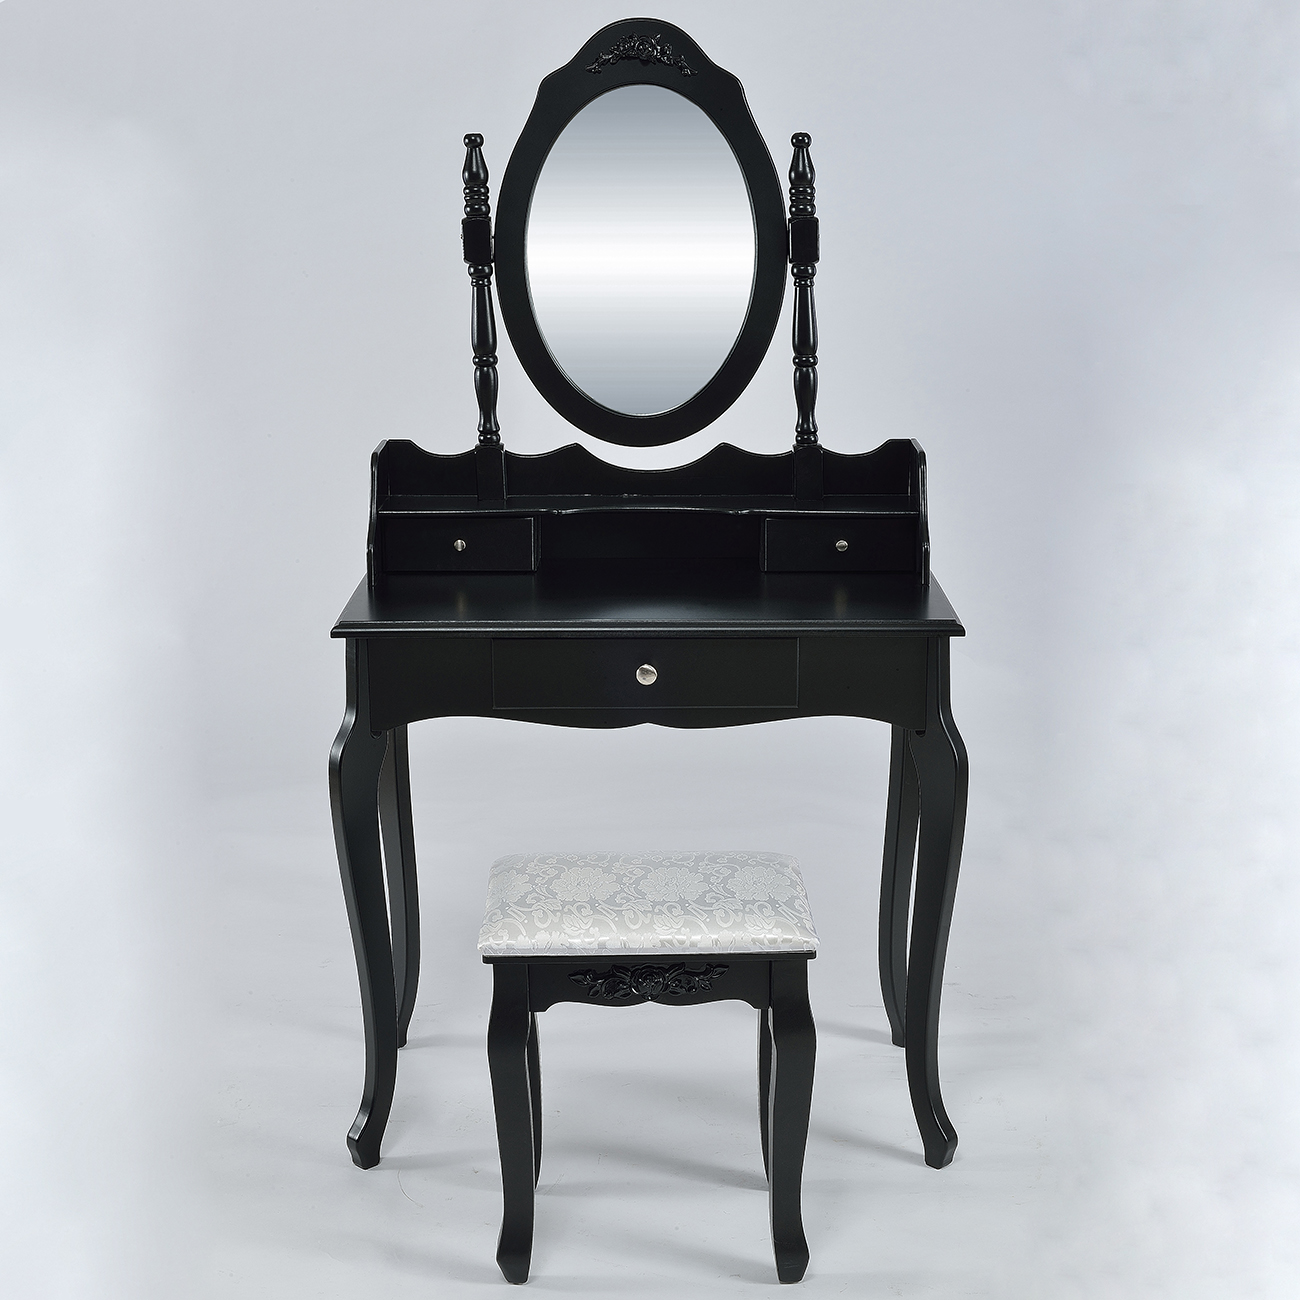 New 3 drawer mirror makeup vanity table set with stool jewelry black white ebay - Black and white vanity stool ...